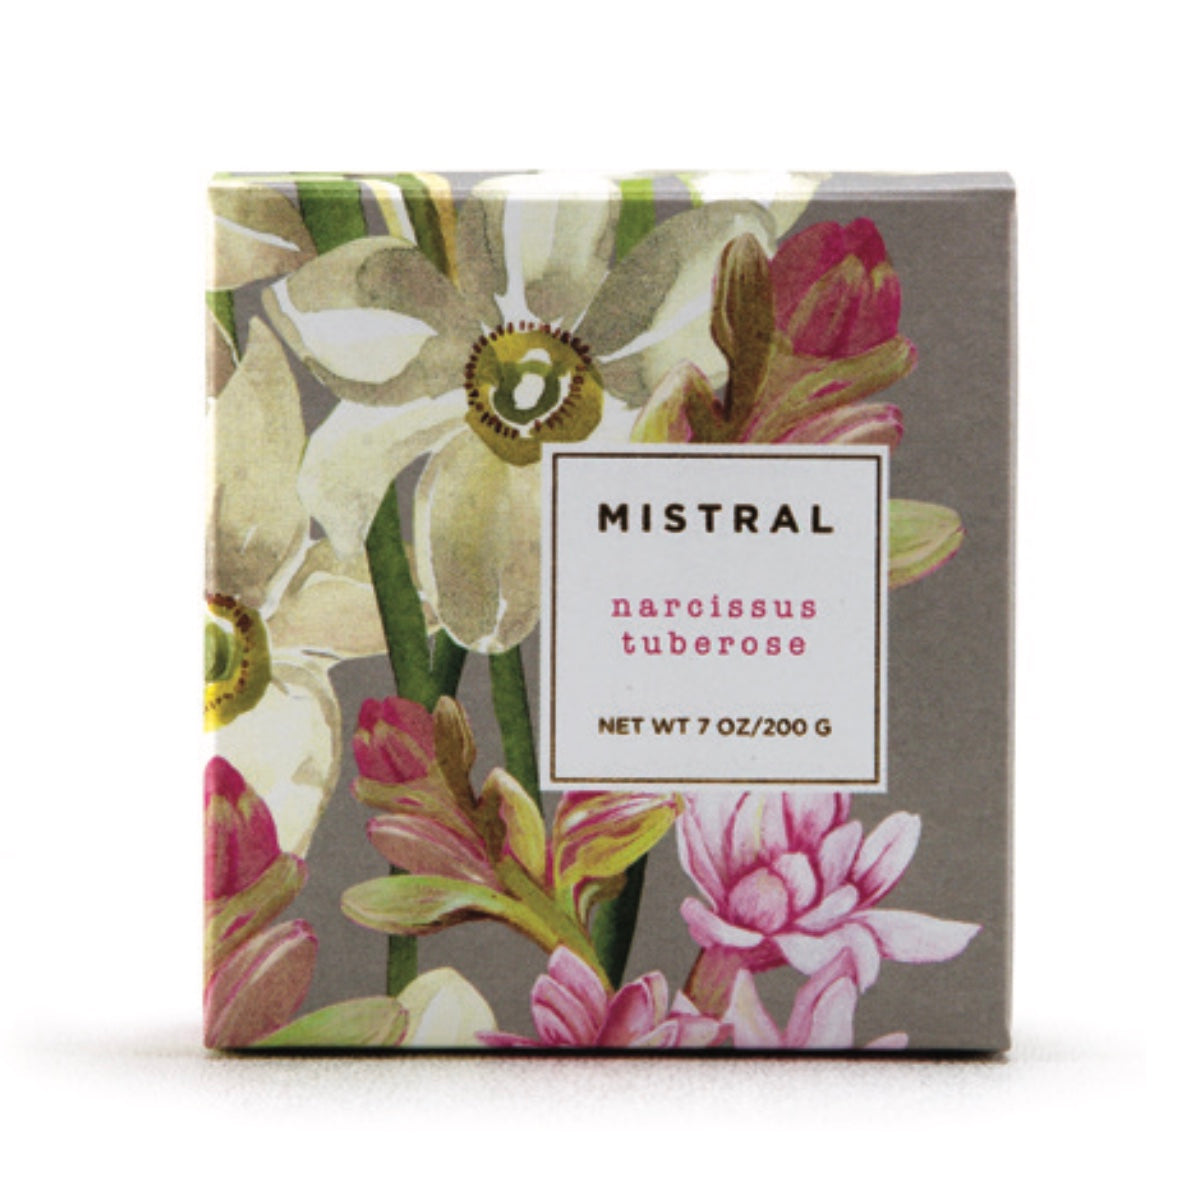 Mistral Floral Collection Soap - Narcissus Tuberose, ME-M-Mistral, Putti Fine Furnishings